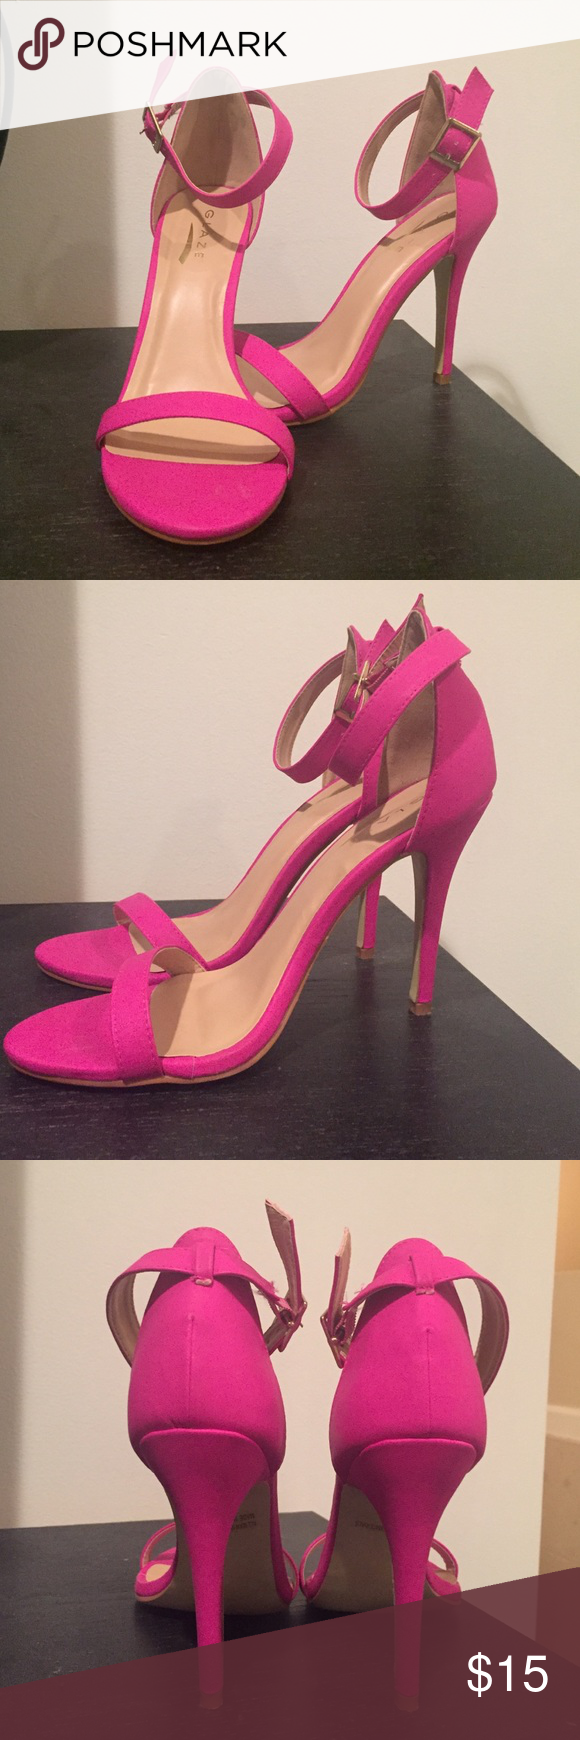 Never worn Galze hot pink ankle strap heels Never worn hot pink ankle strap heels Glaze Shoes Heels